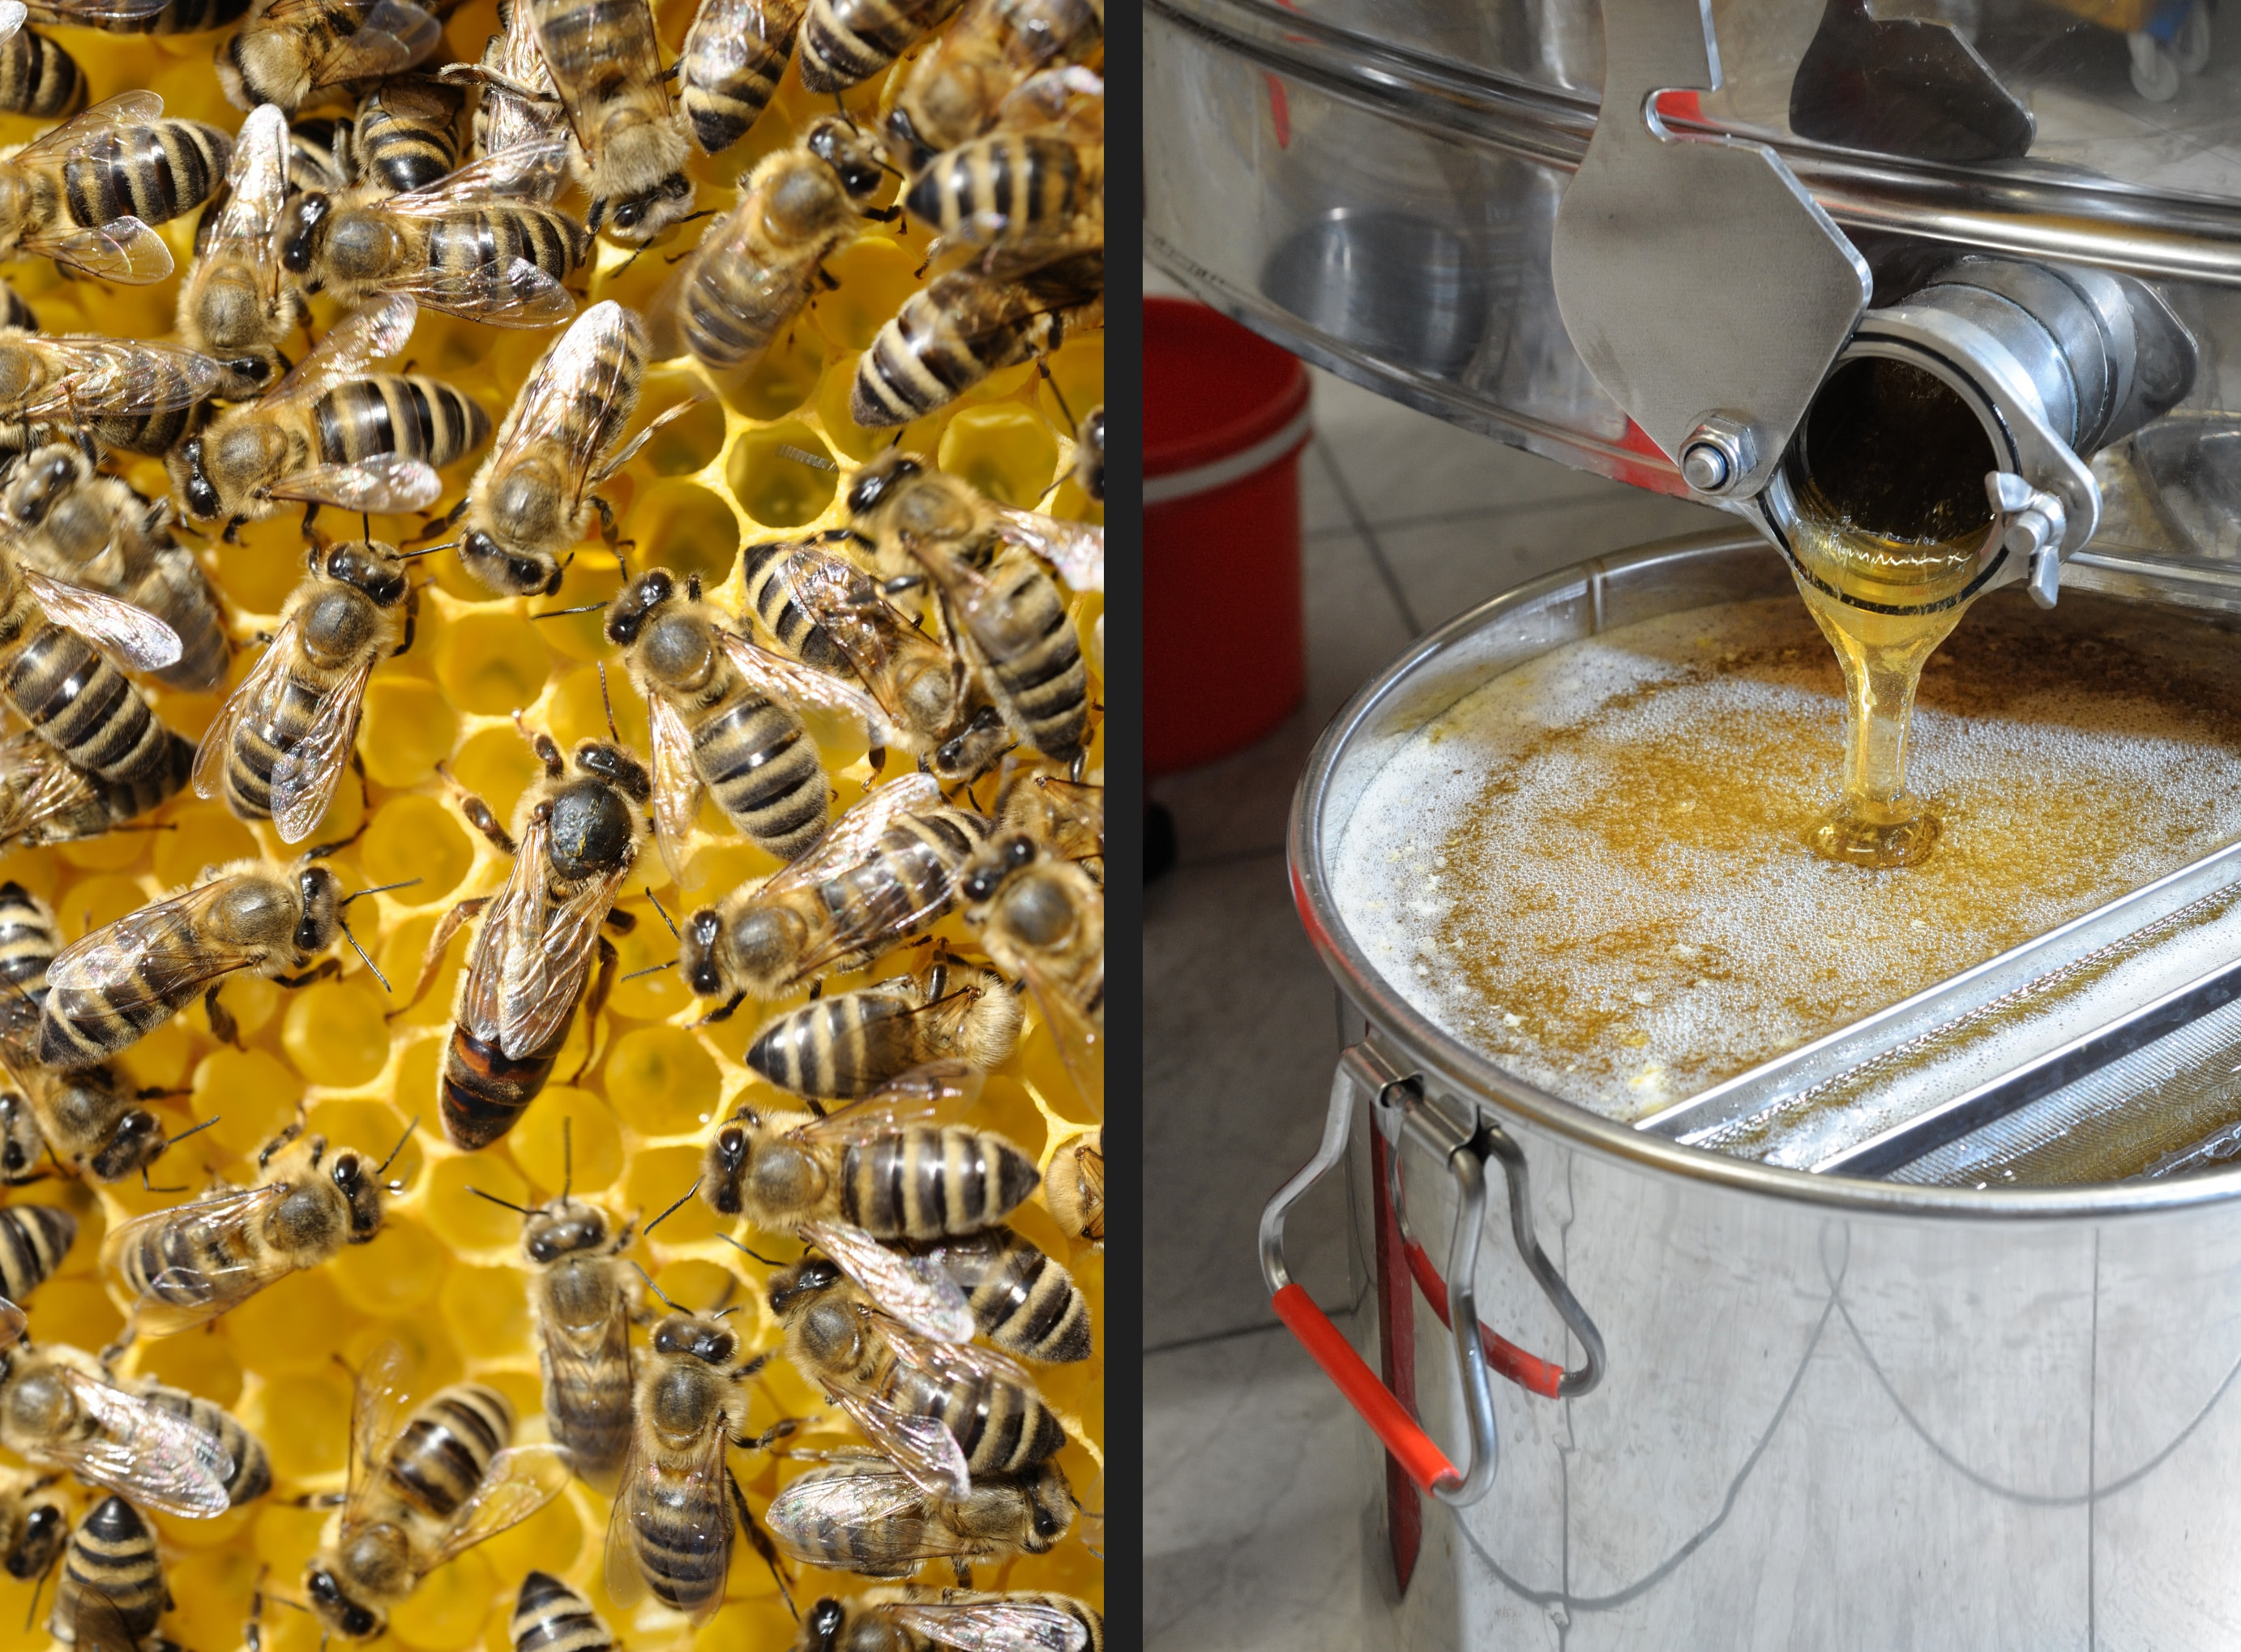 A queen surrounded by workers (left). Honey dripping from the centrifuge.